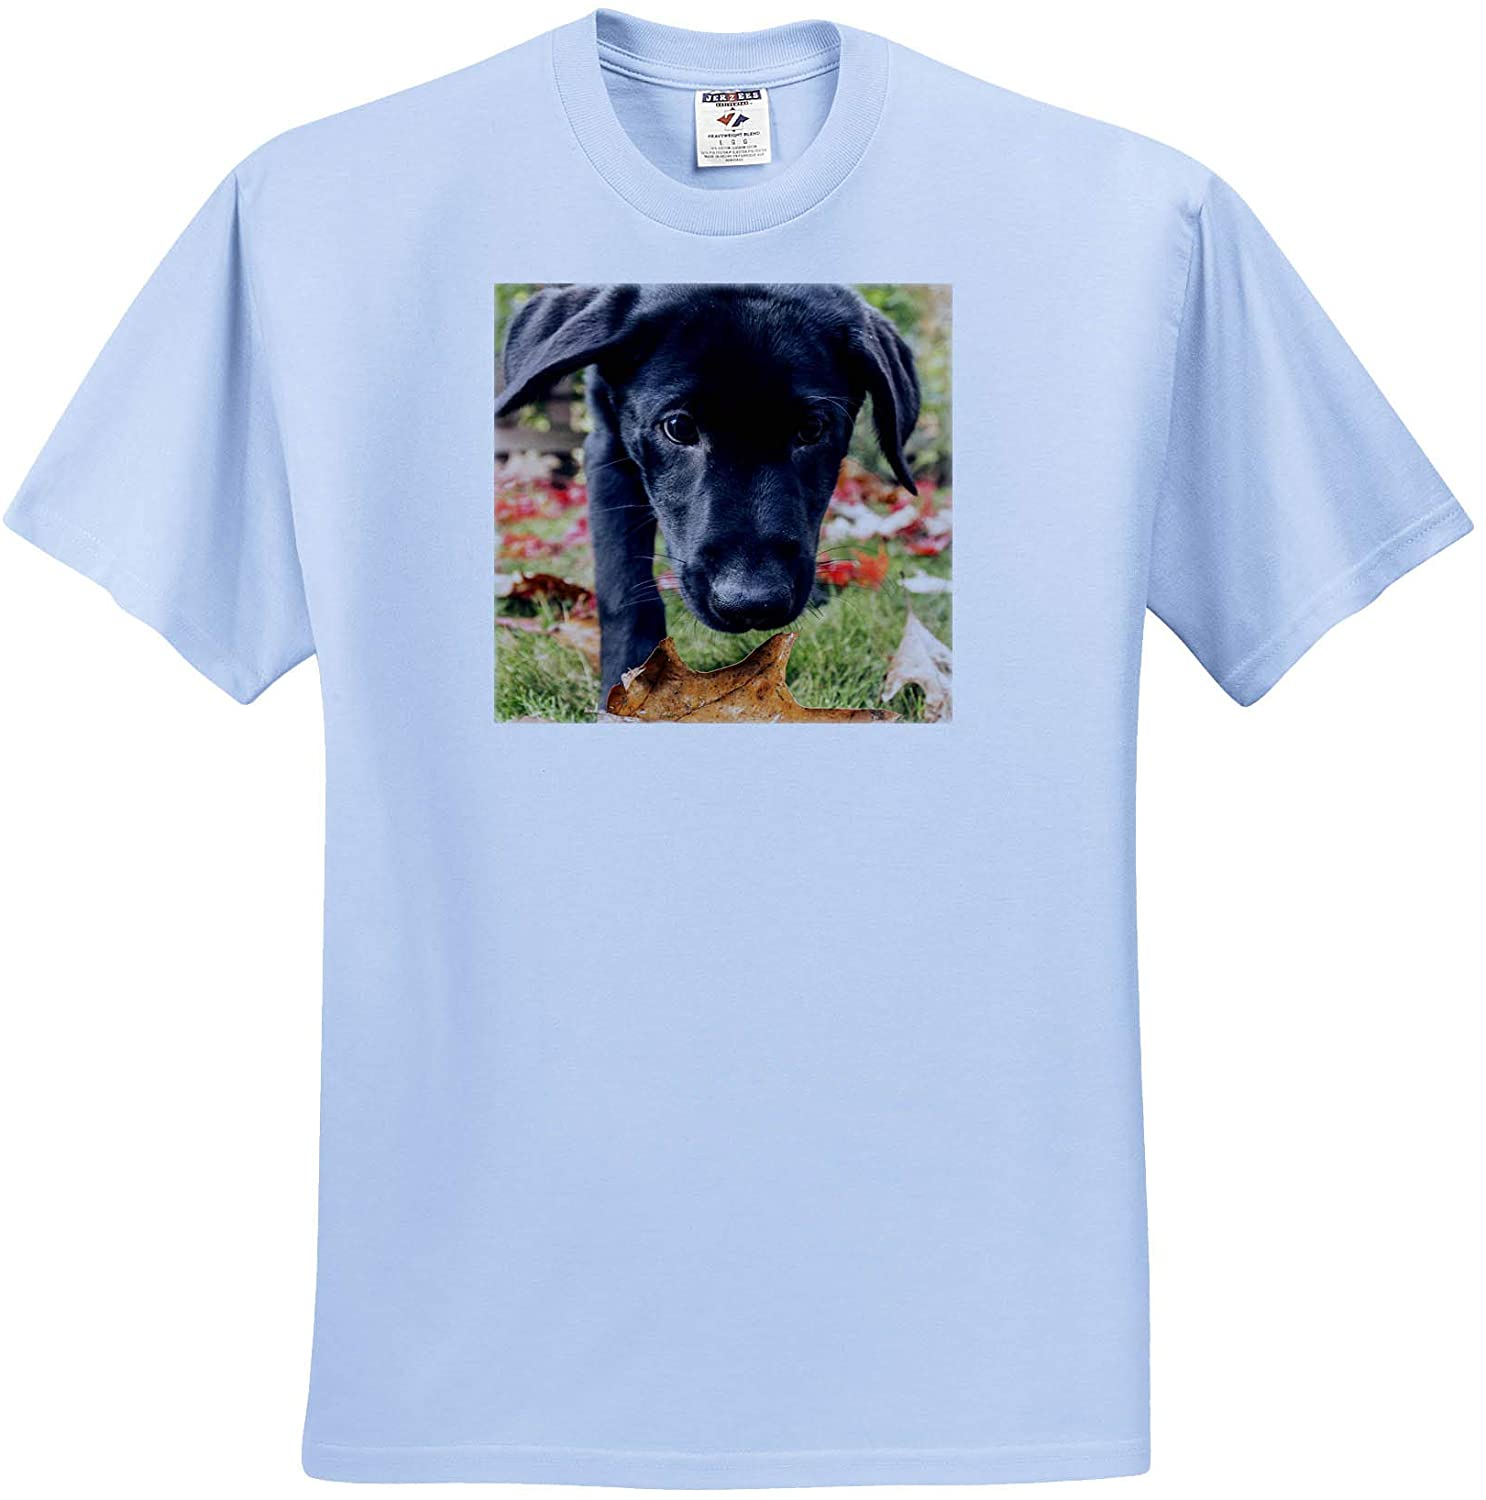 3dRose Portrait of a Three Month Old Black Labrador Retriever Puppy. - T-Shirts (ts_332736)